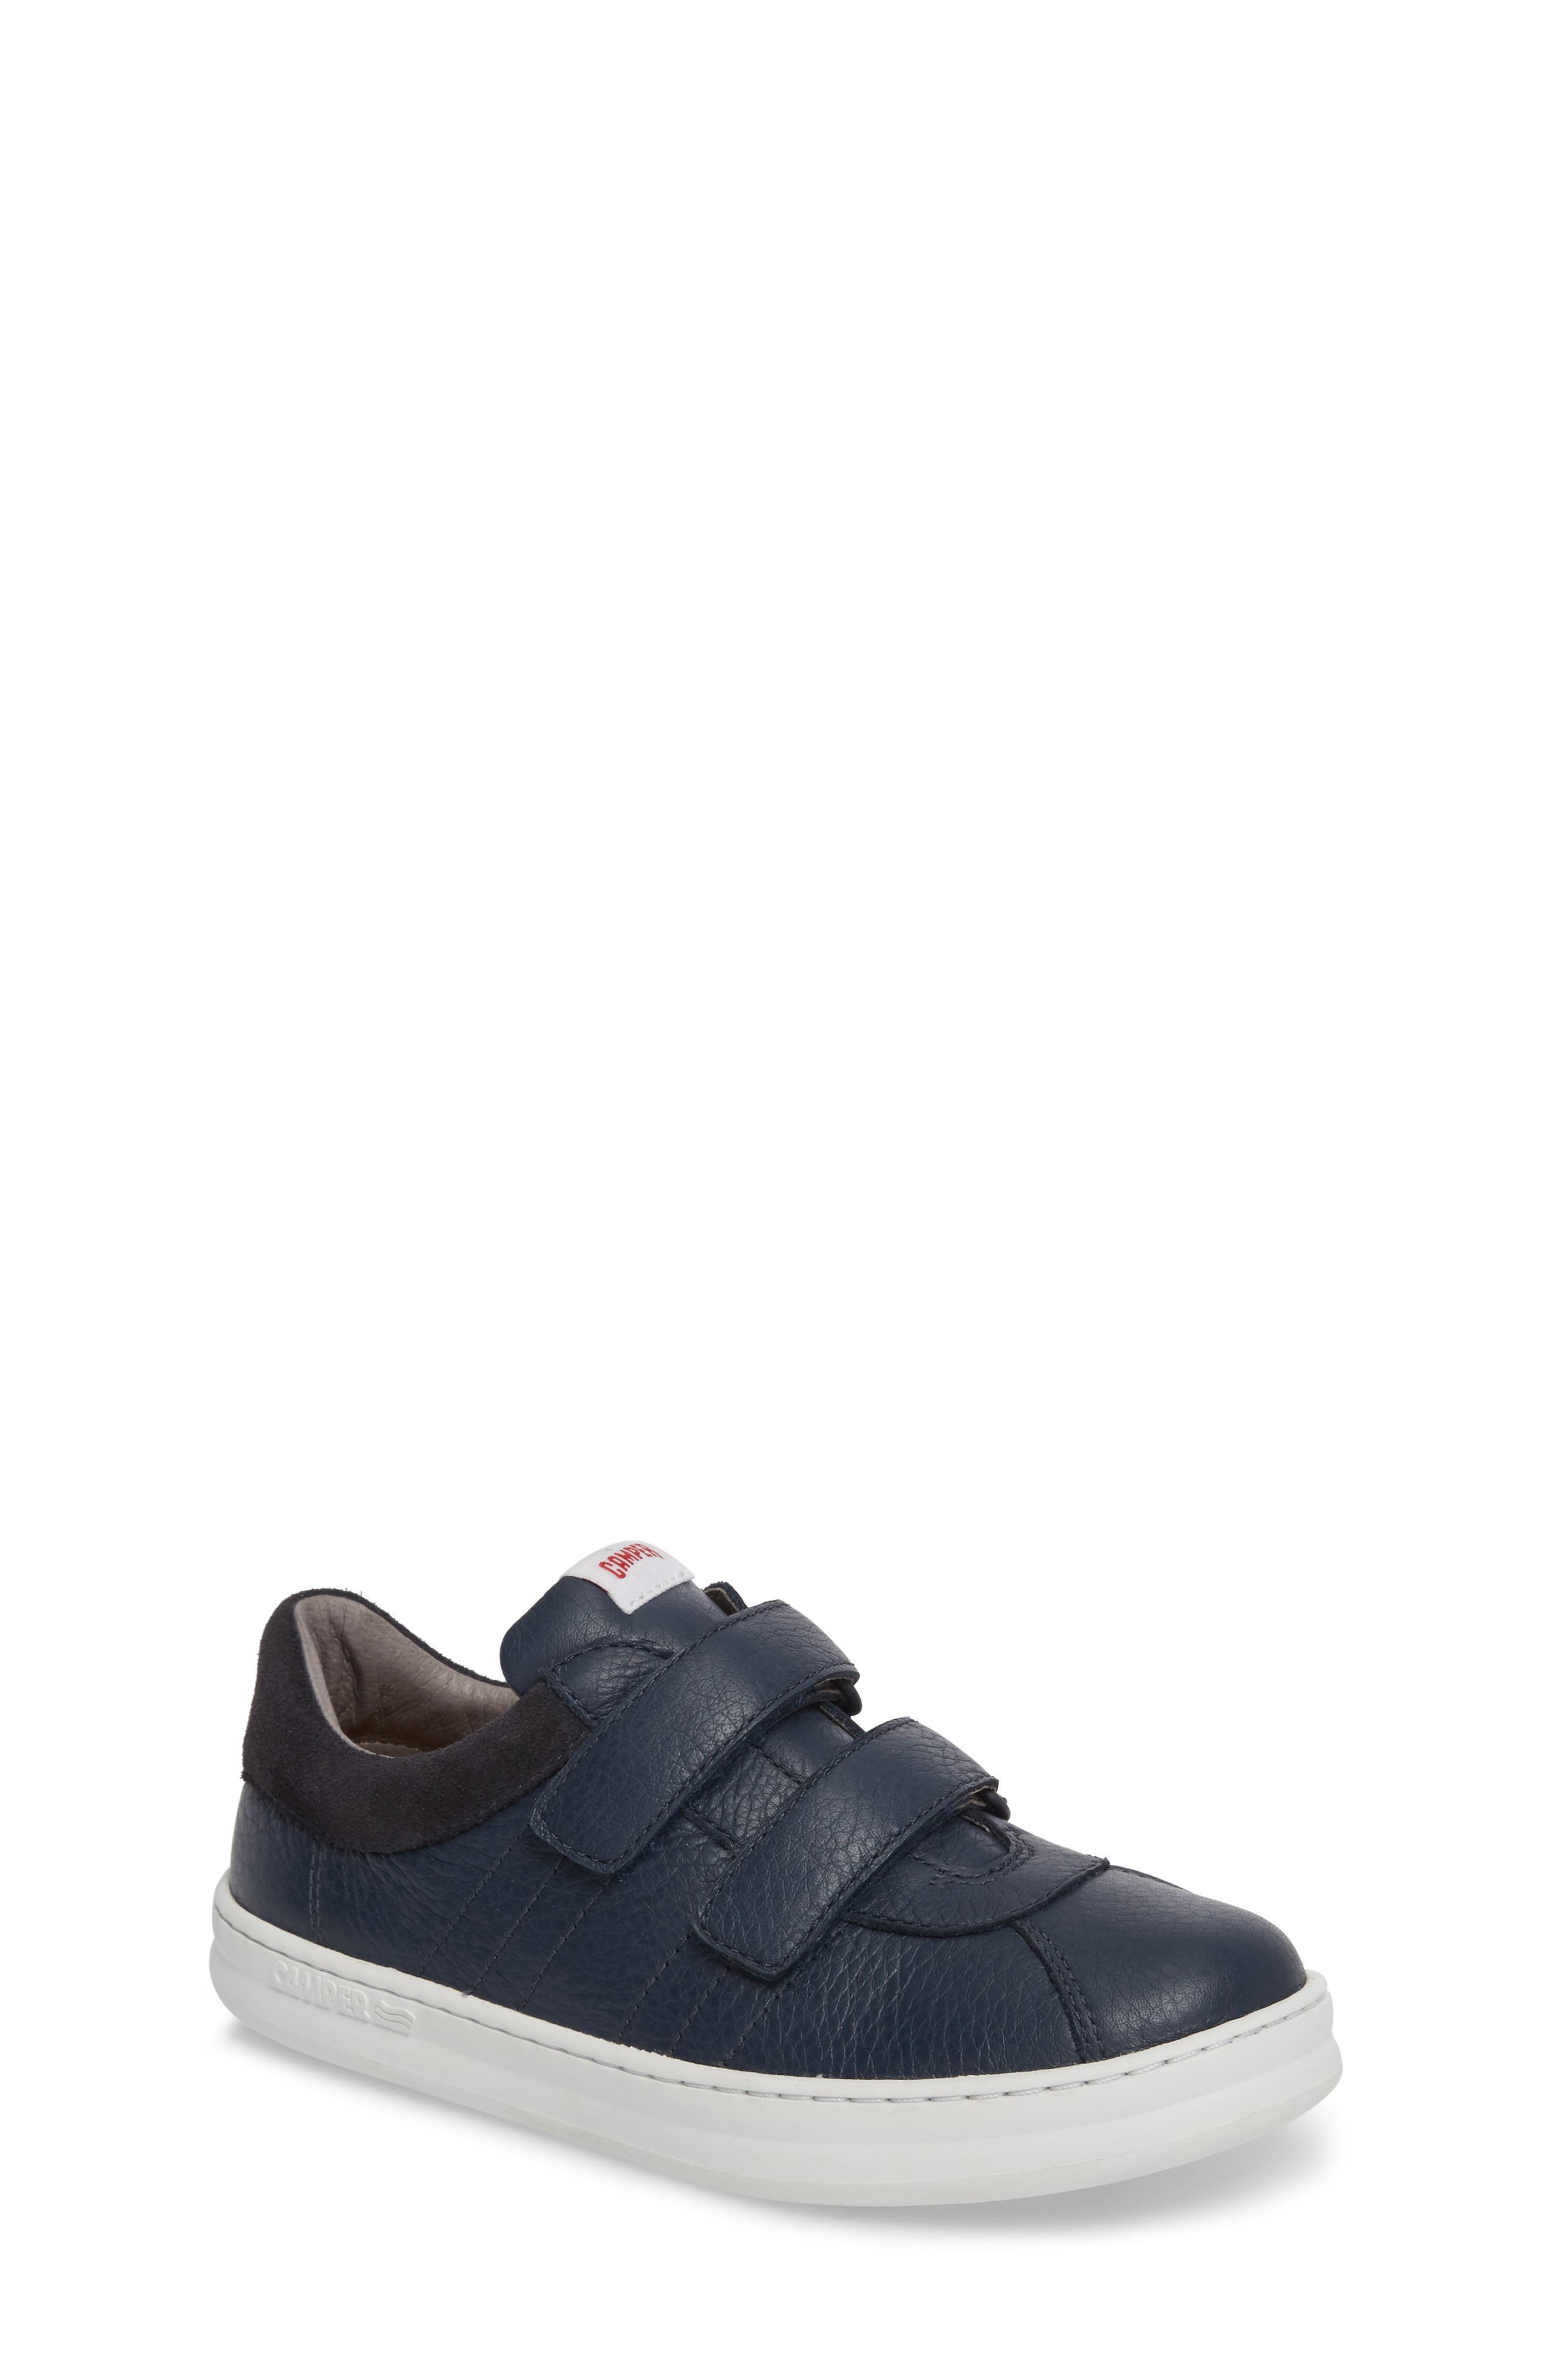 Camper Runner Sneaker (Toddler, Little Kid & Big Kid)